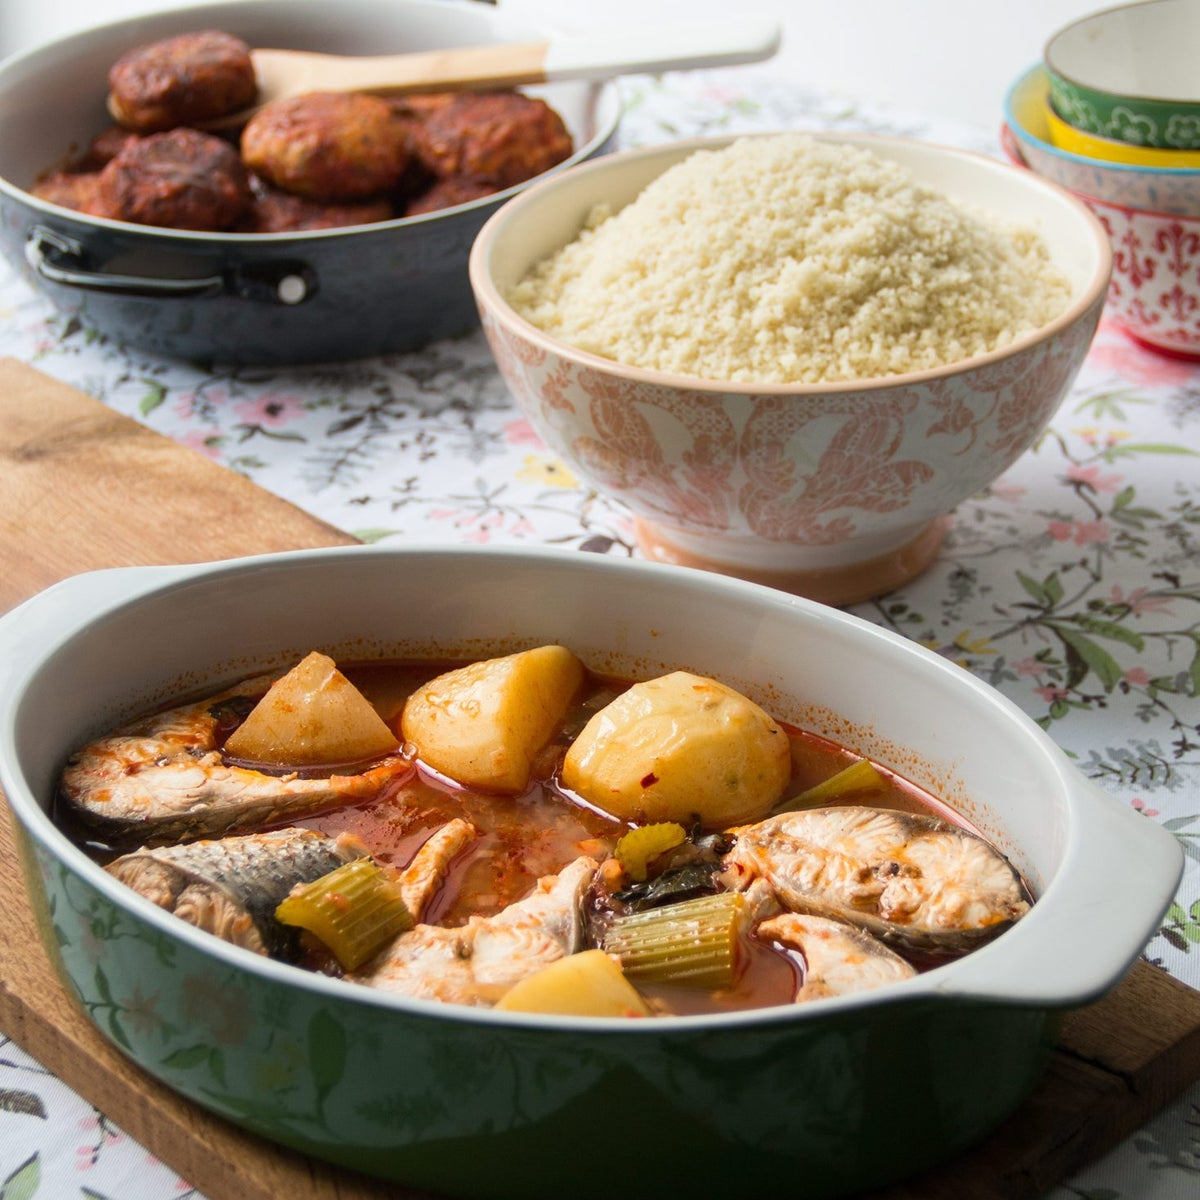 Fish patties in tomato sauce, fish soup and couscous.